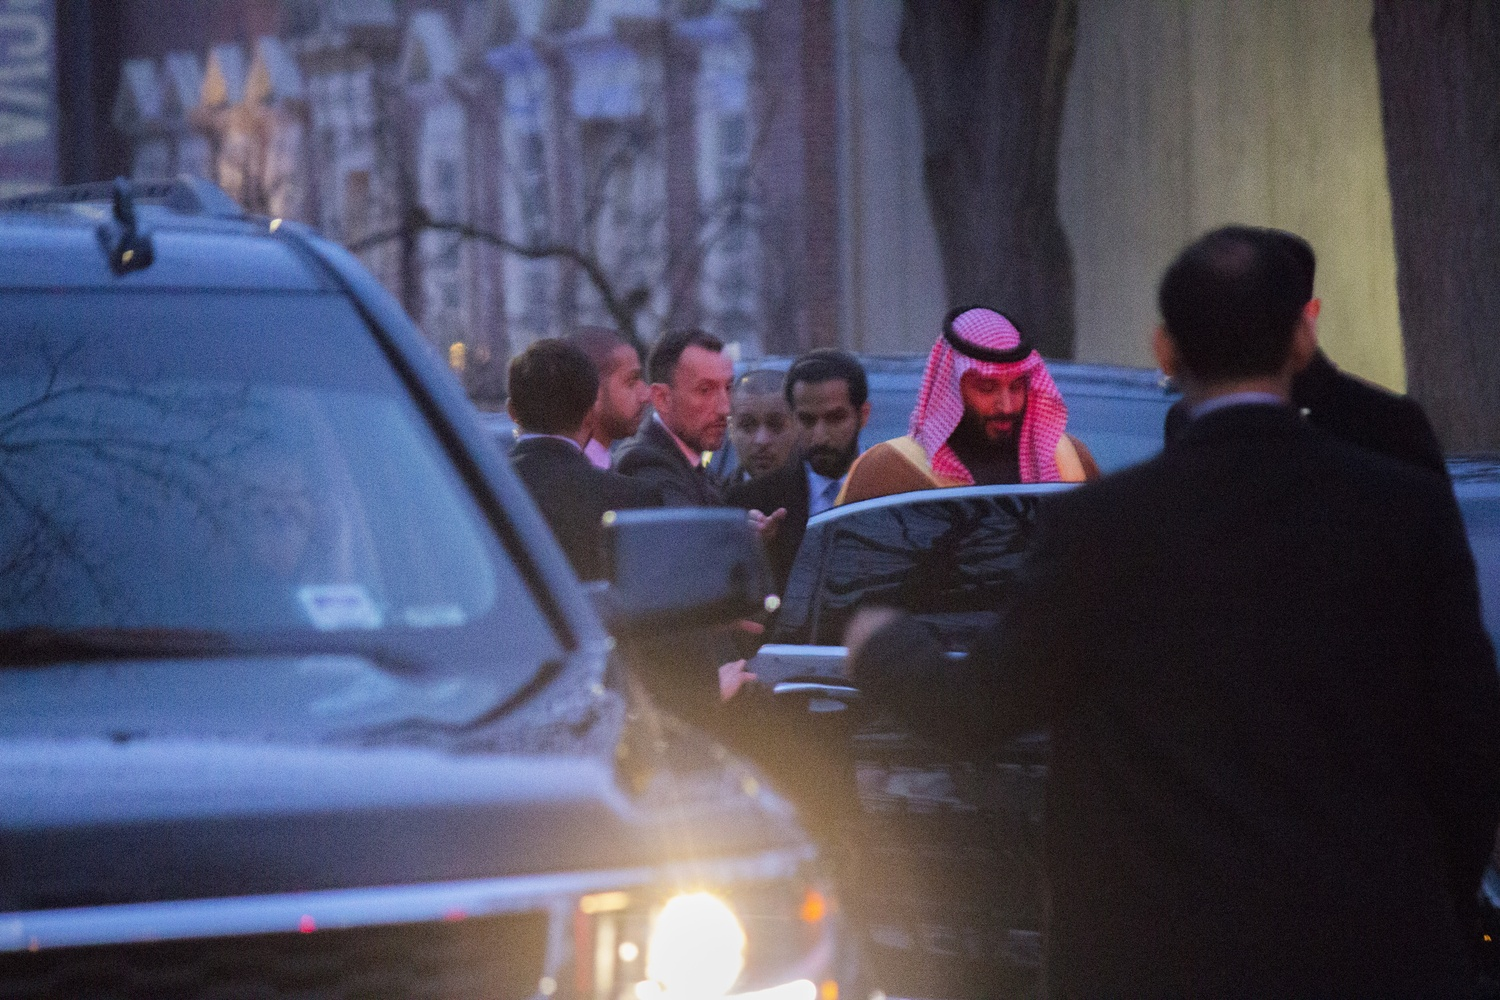 The Crown Prince of Saudi Arabia leaves the Harvard Faculty Club in early 2018 and climbs into a waiting motorcade.